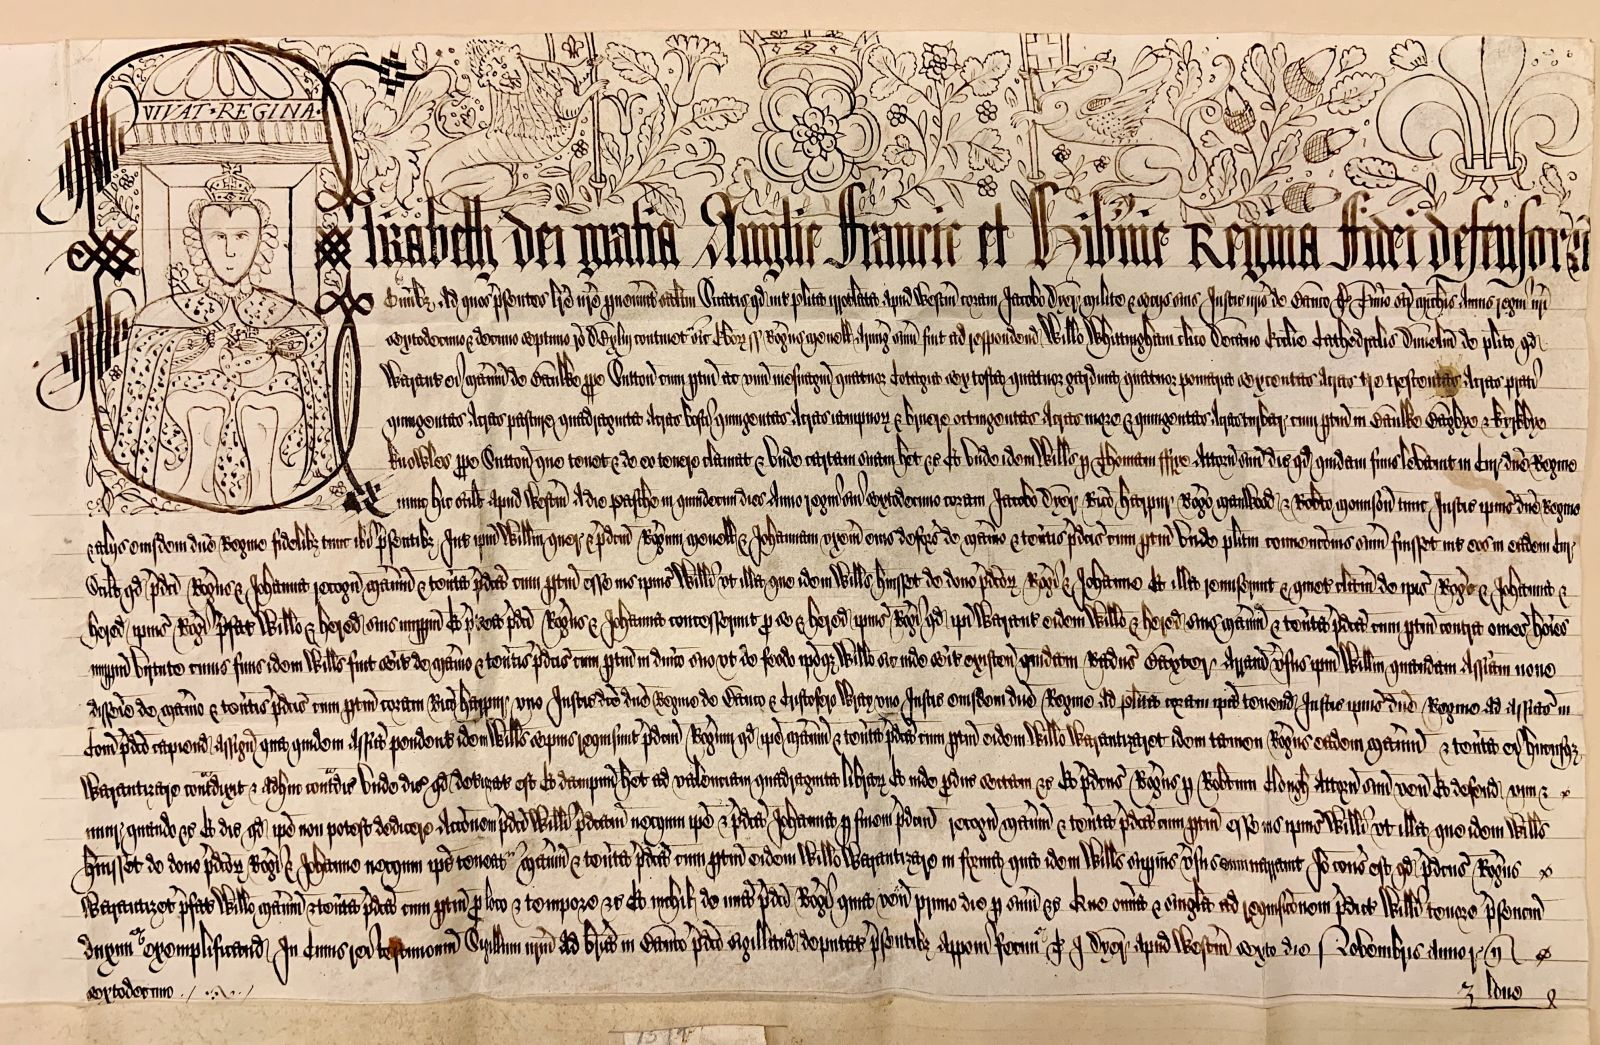 A view of the entire manuscript. The document is in a landscape orientation (shorter than it is wide). The majority of the document is filled with text, save for the portrait of Elizabeth I in the top-left corner and the border of illustrated symbols along the top margin.